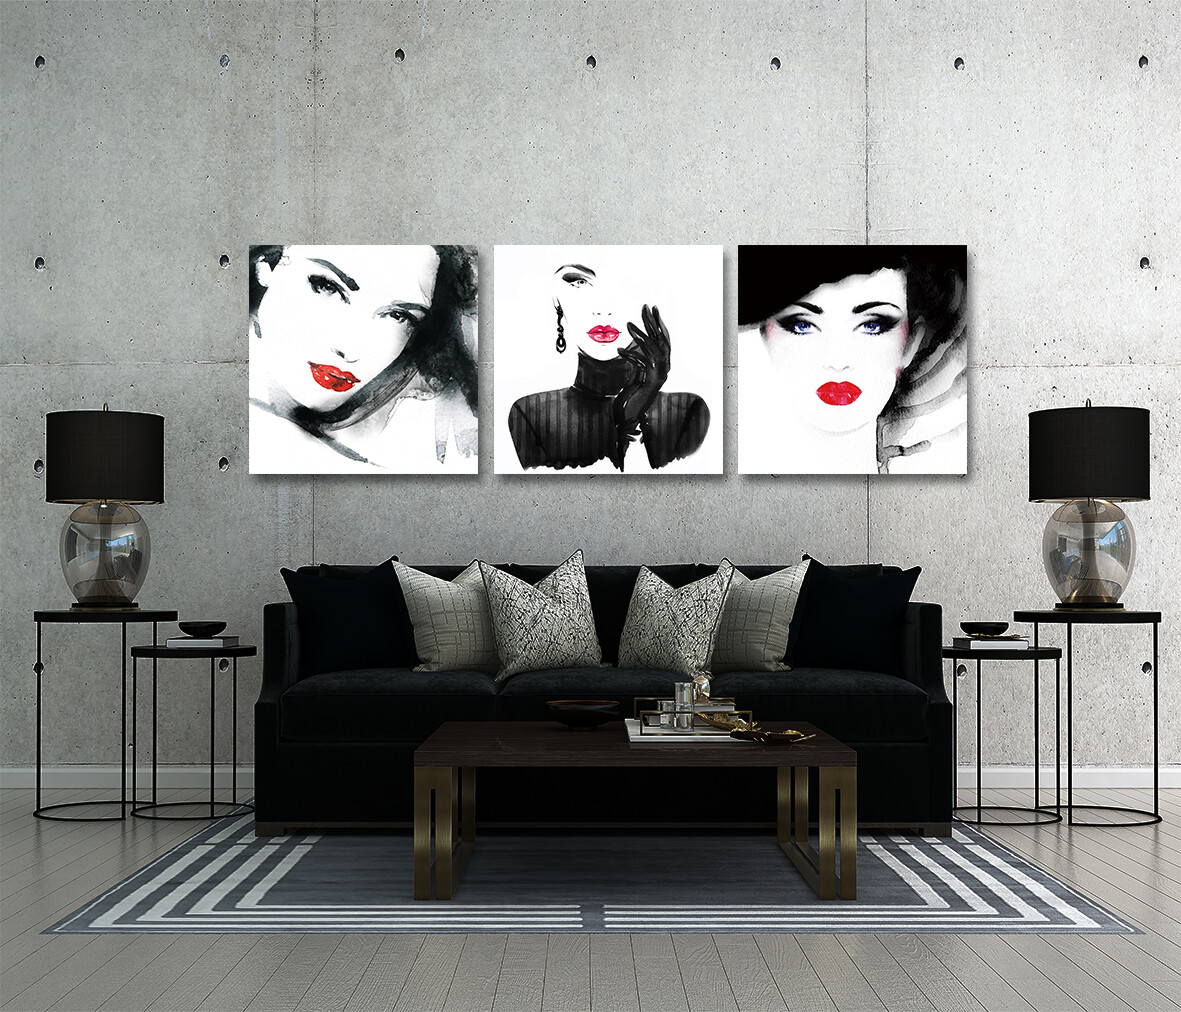 Glamorous Woman  - Modern Luxury Wall art Printed on Acrylic Glass - Frameless and Ready to Hang